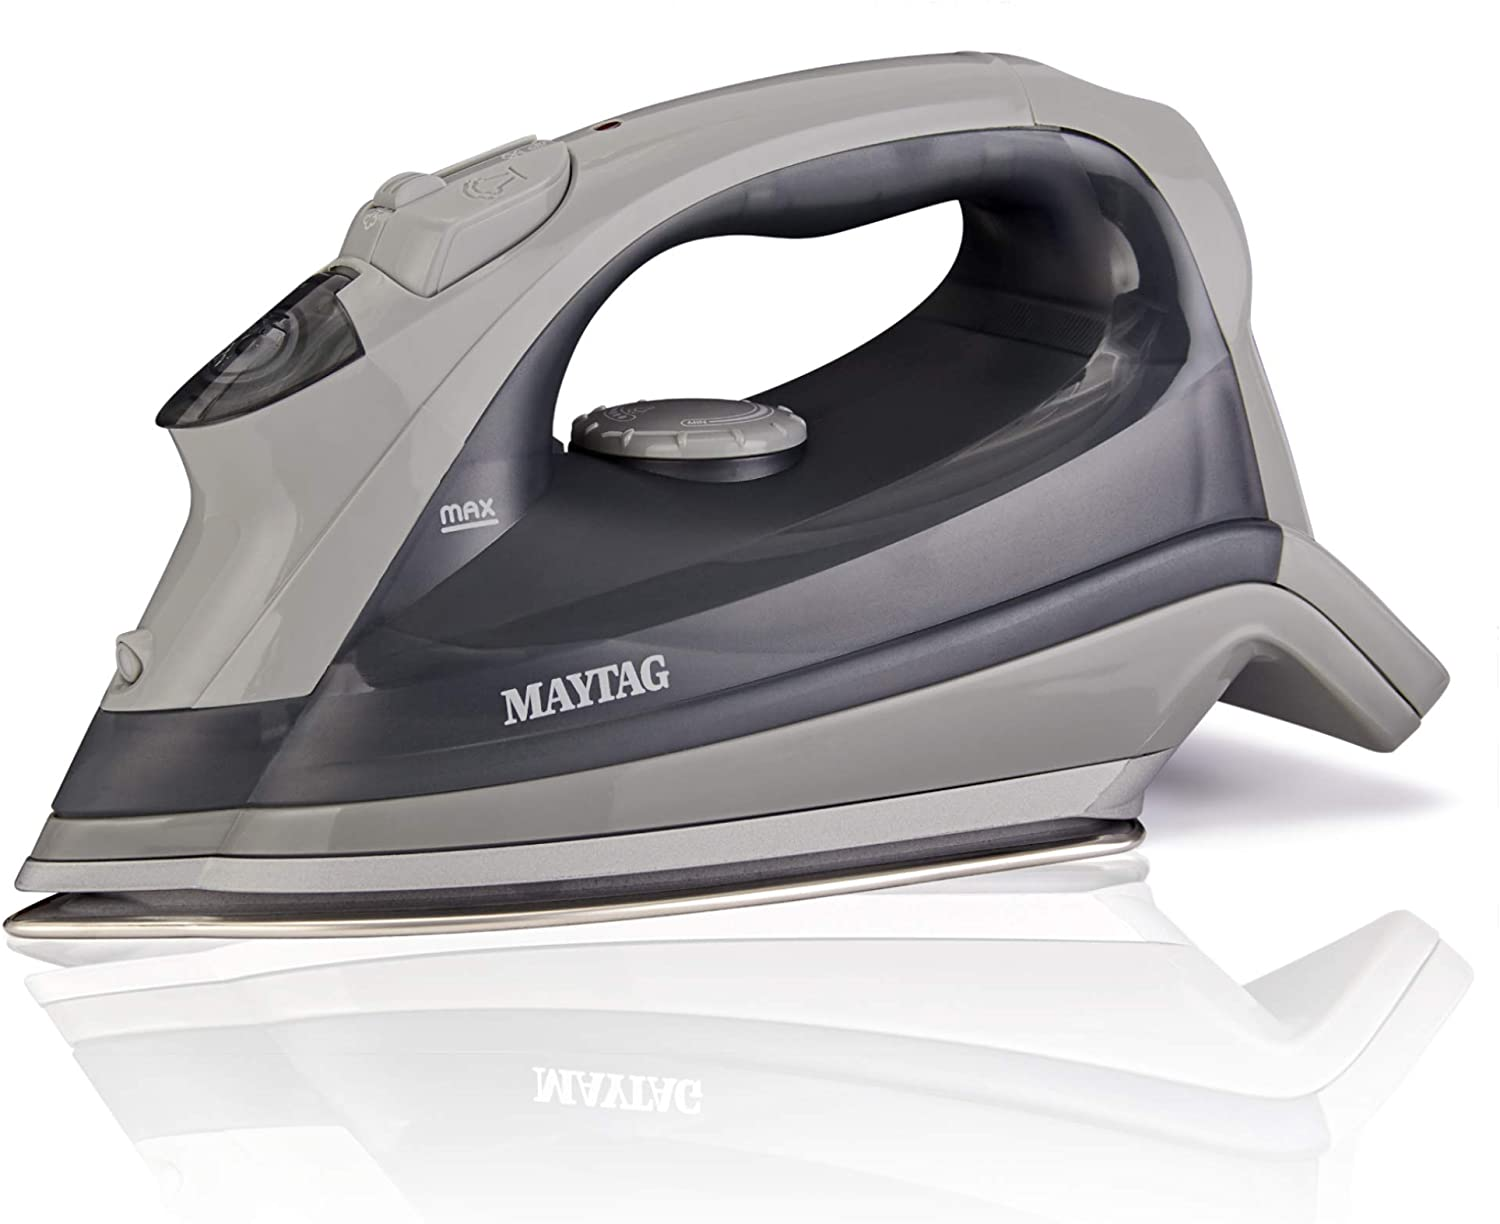 Maytag Steam Iron